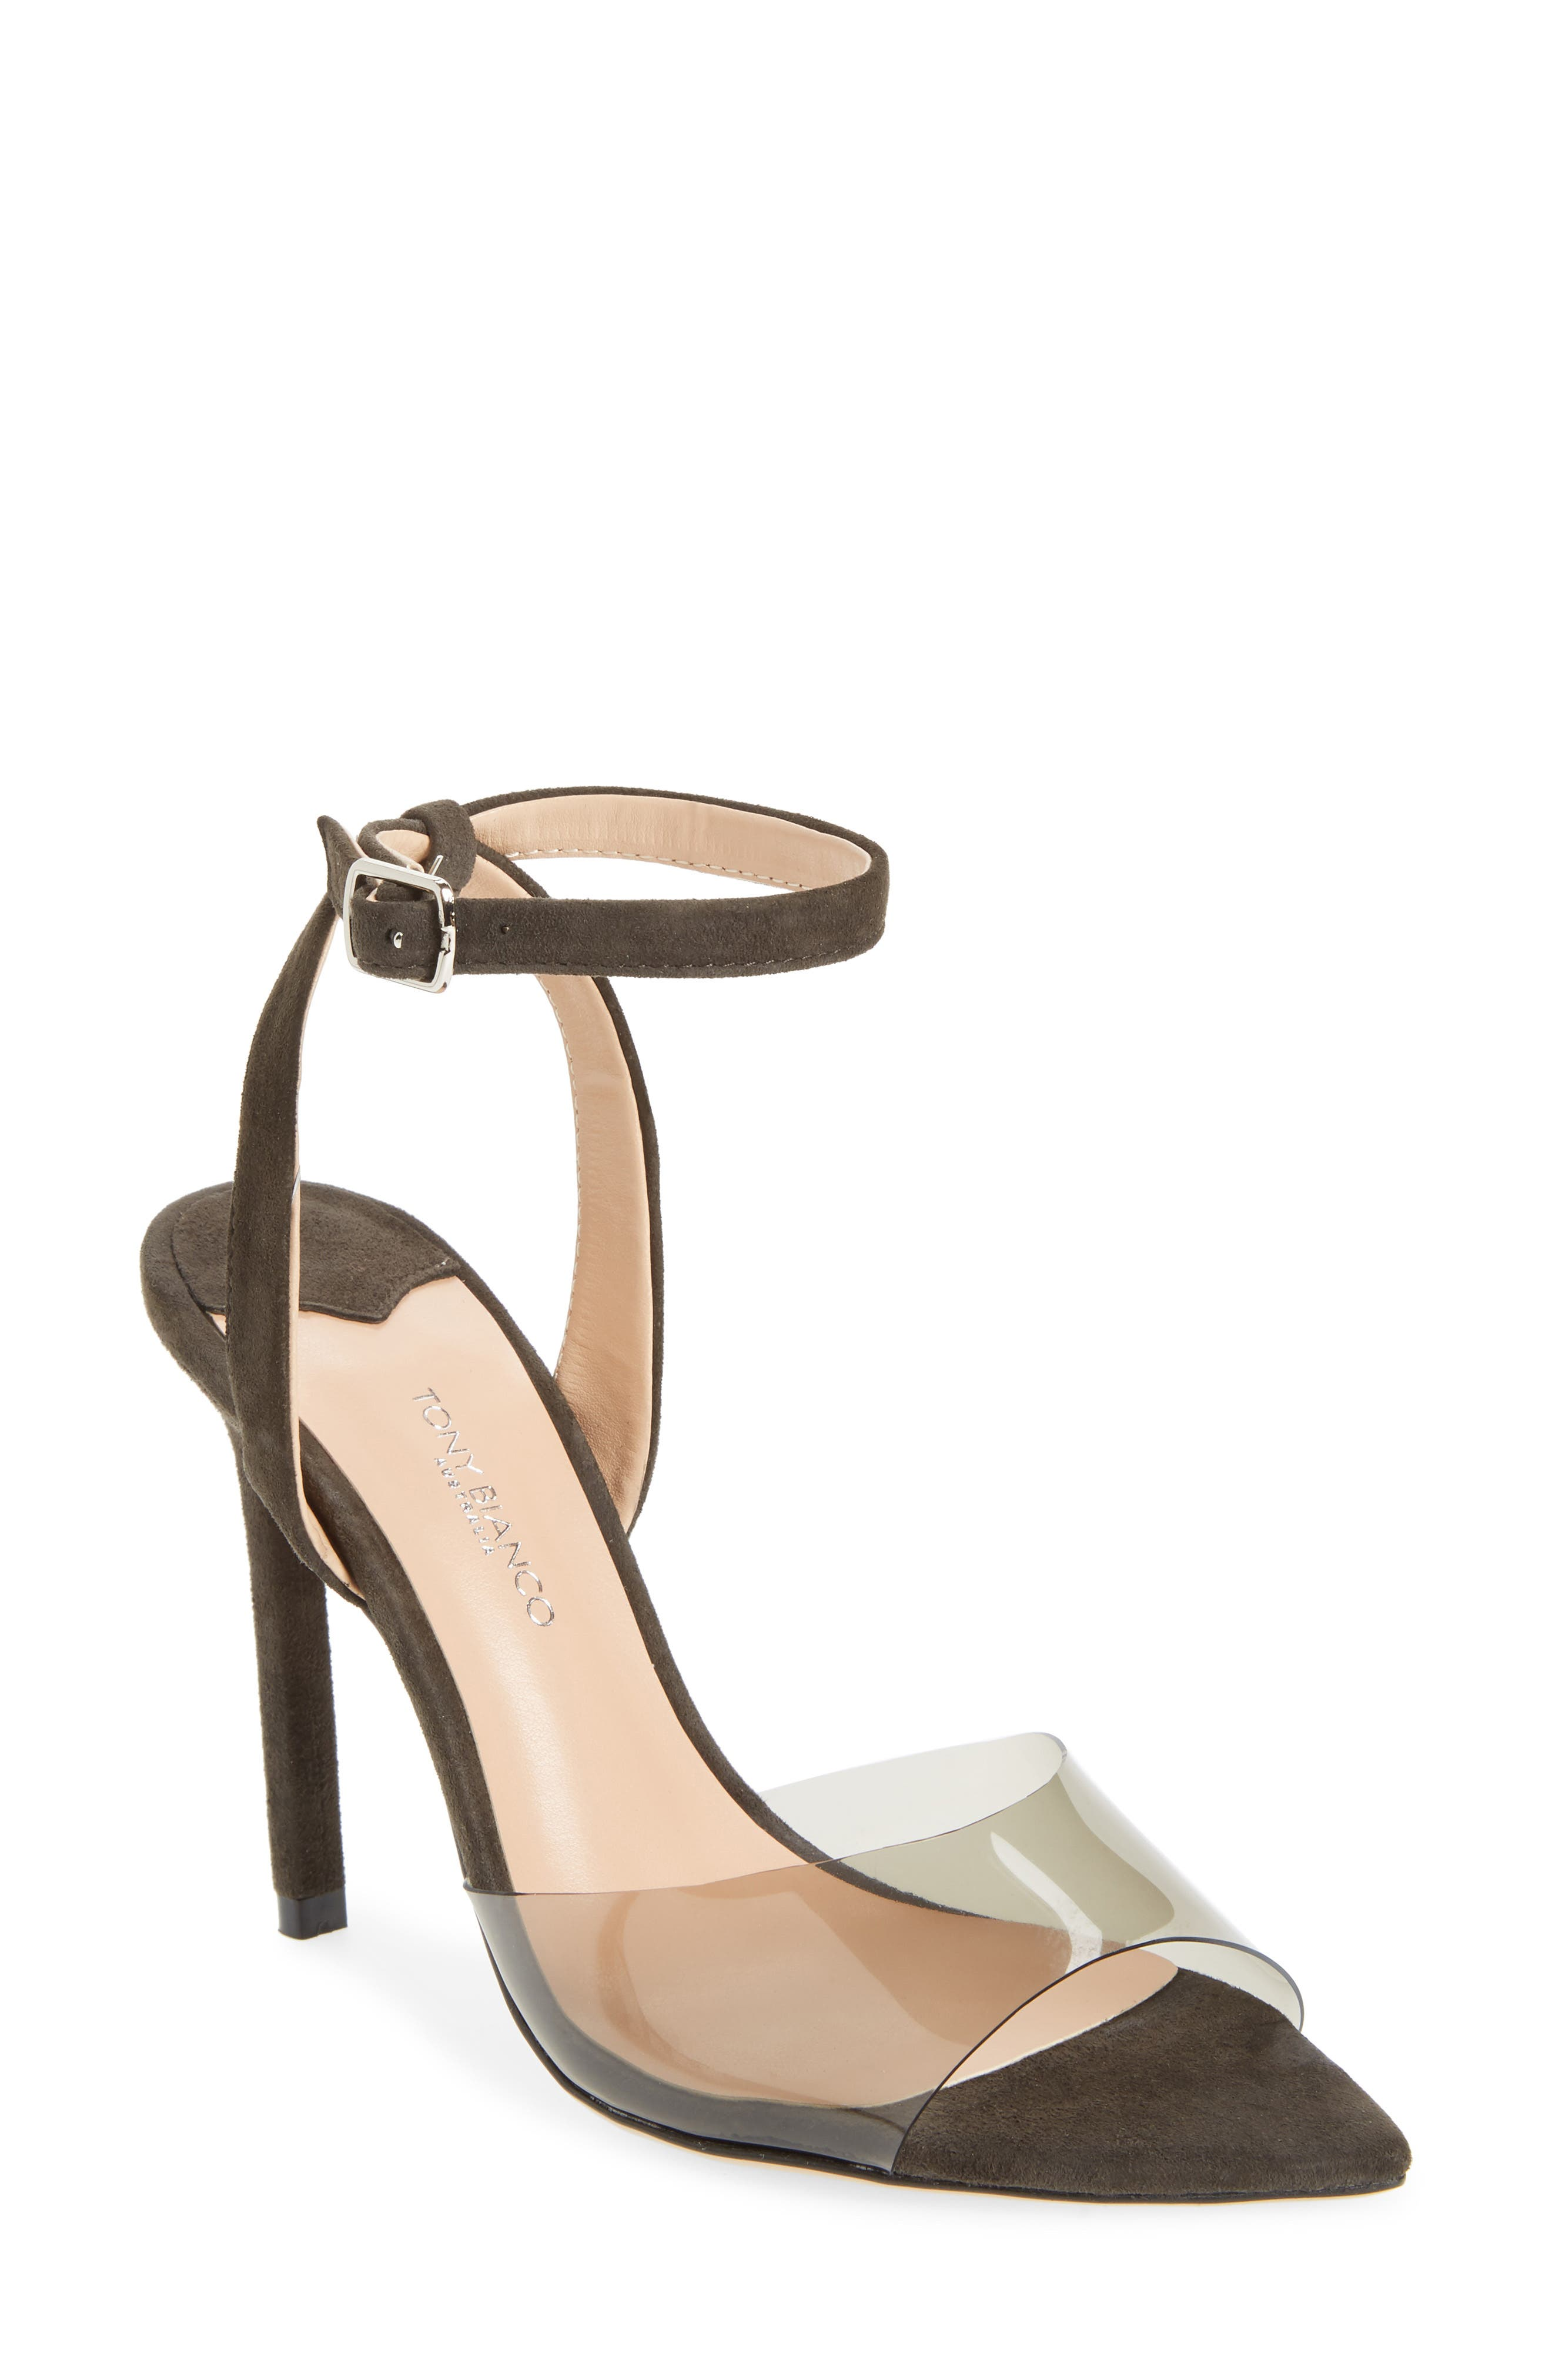 Maxime Sandal,                         Main,                         color, SMOKE / LICORICE SUEDE